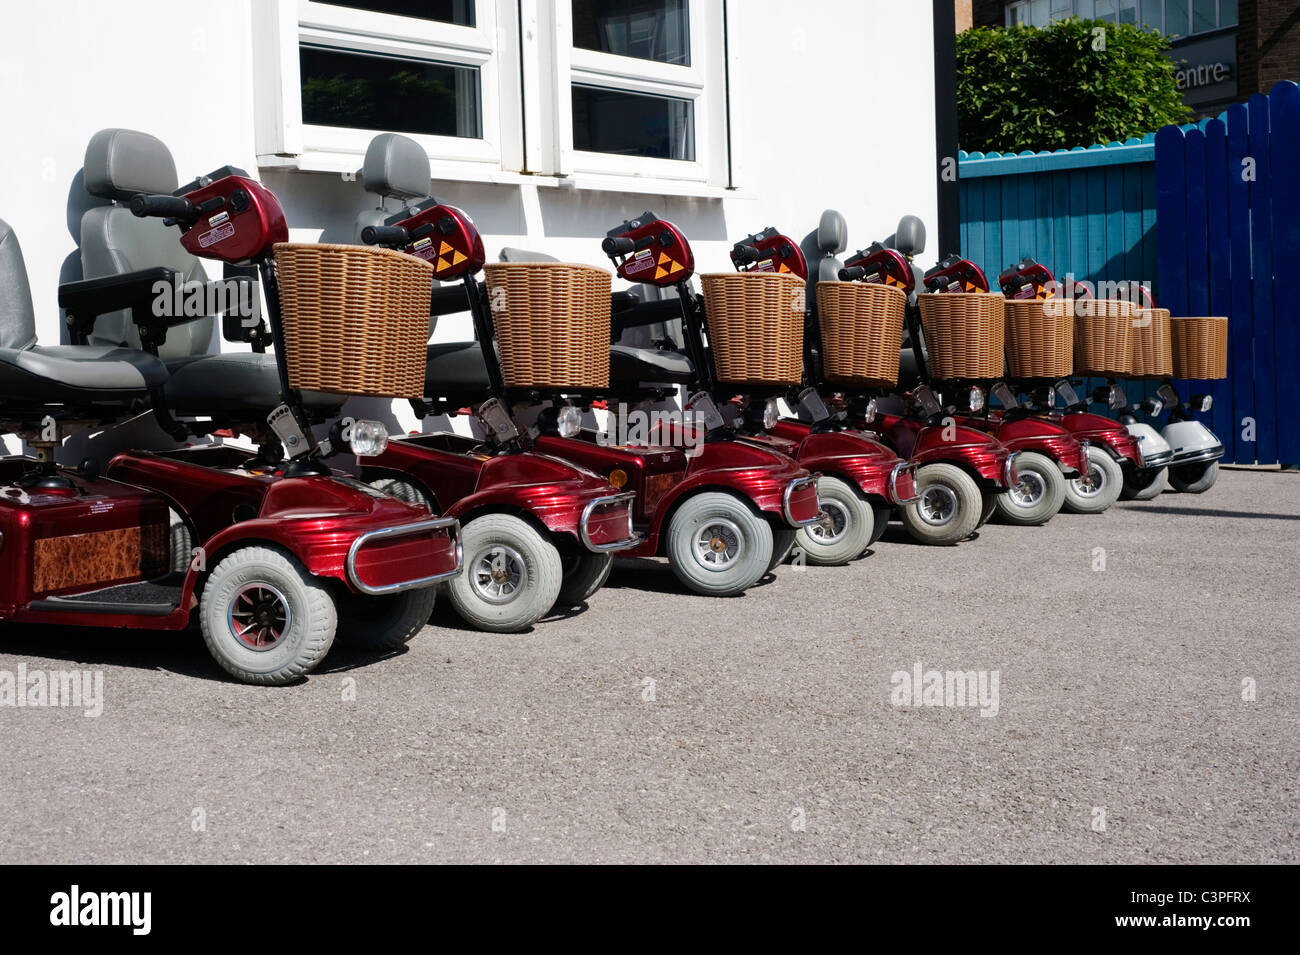 Scooters For Rent Stock Photos Scooters For Rent Stock Images Alamy